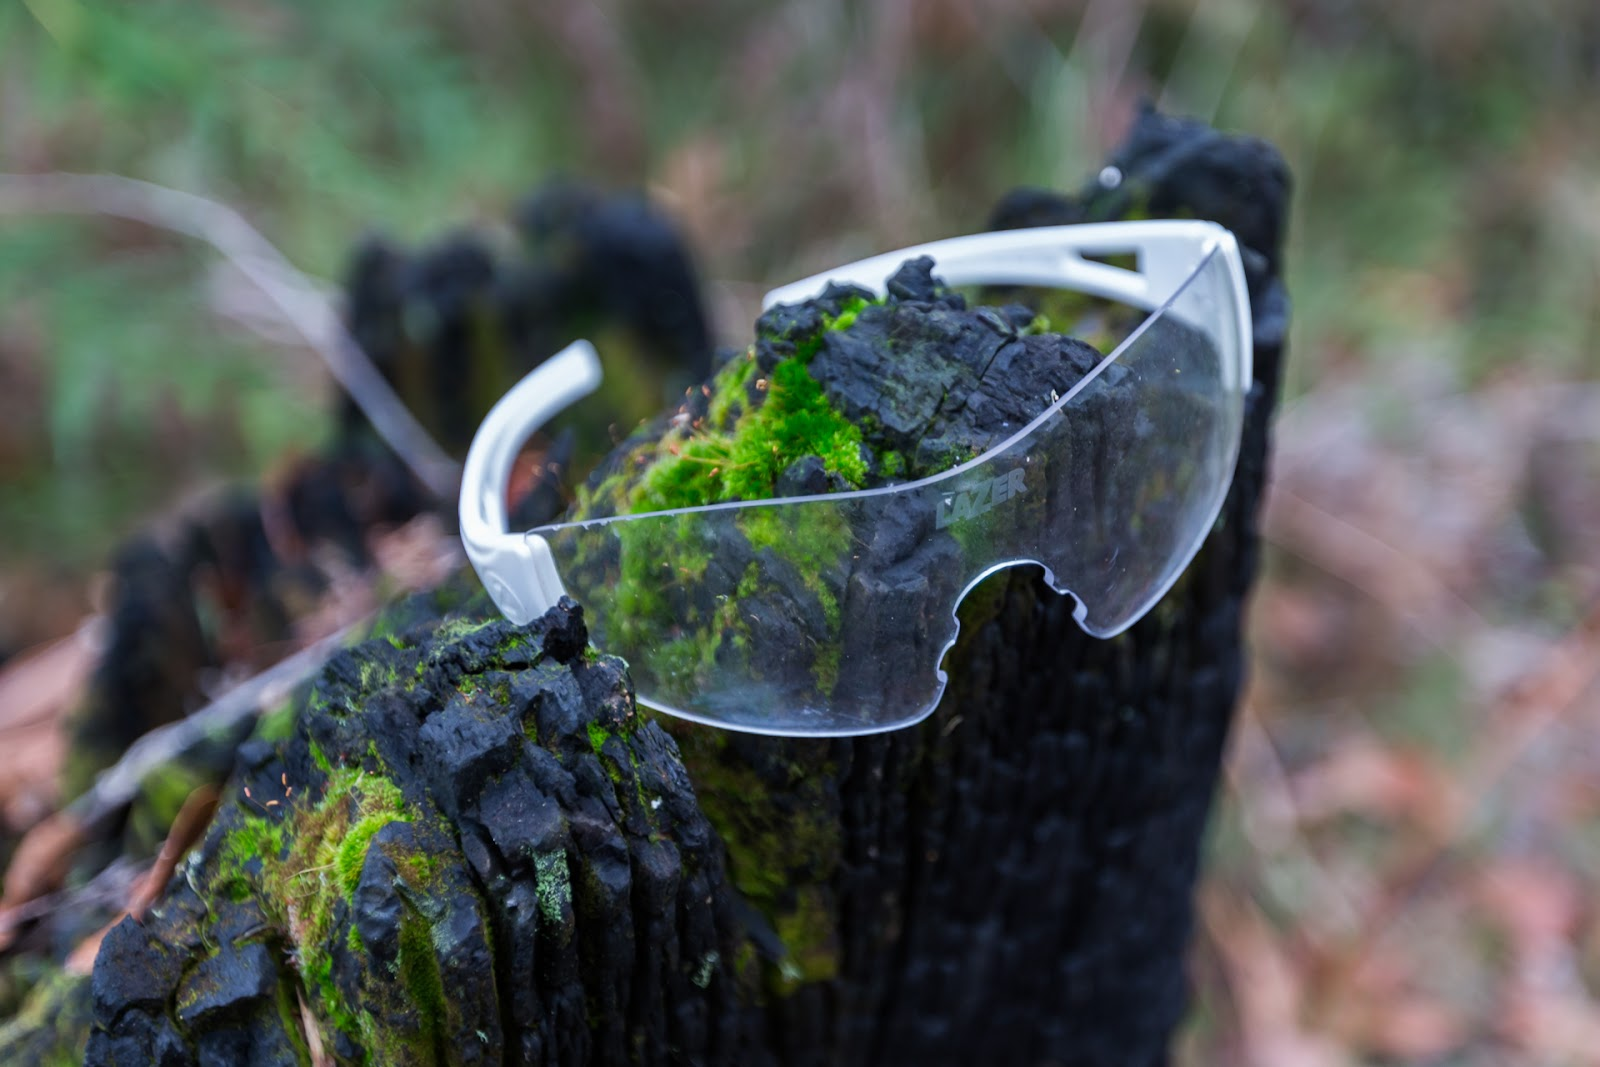 lost glasses on tree stump